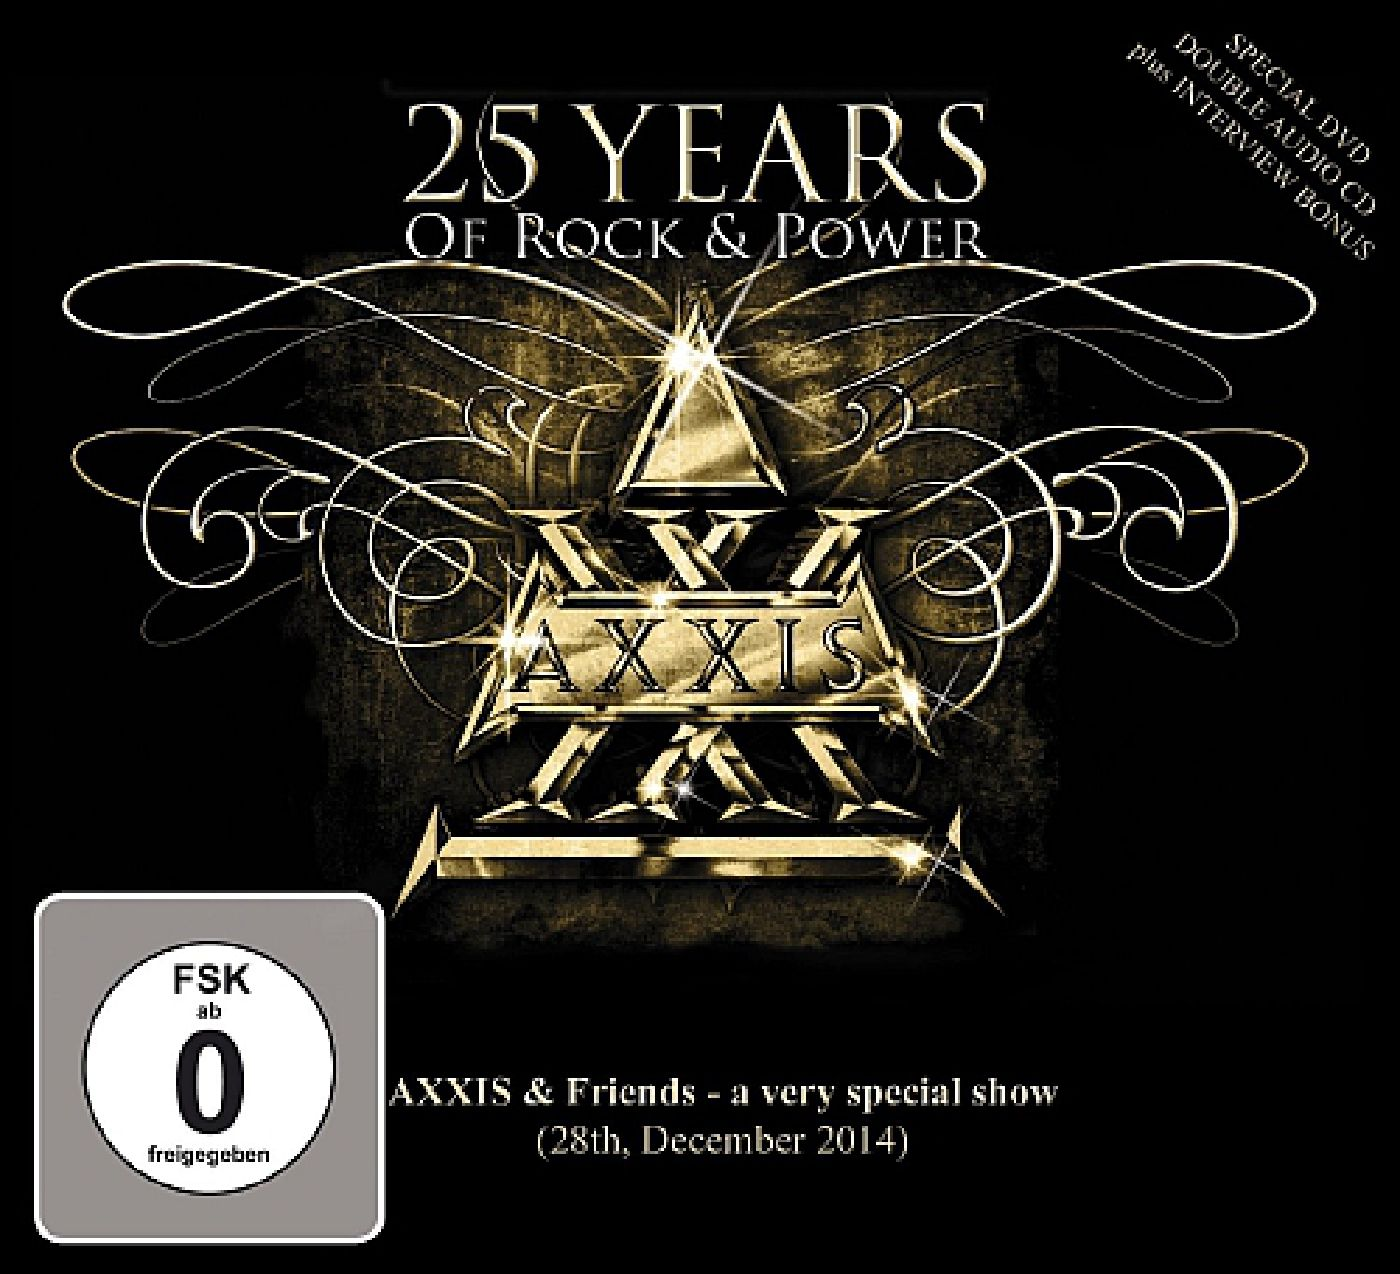 AXXIS DVD 25 Years of Rock & Power